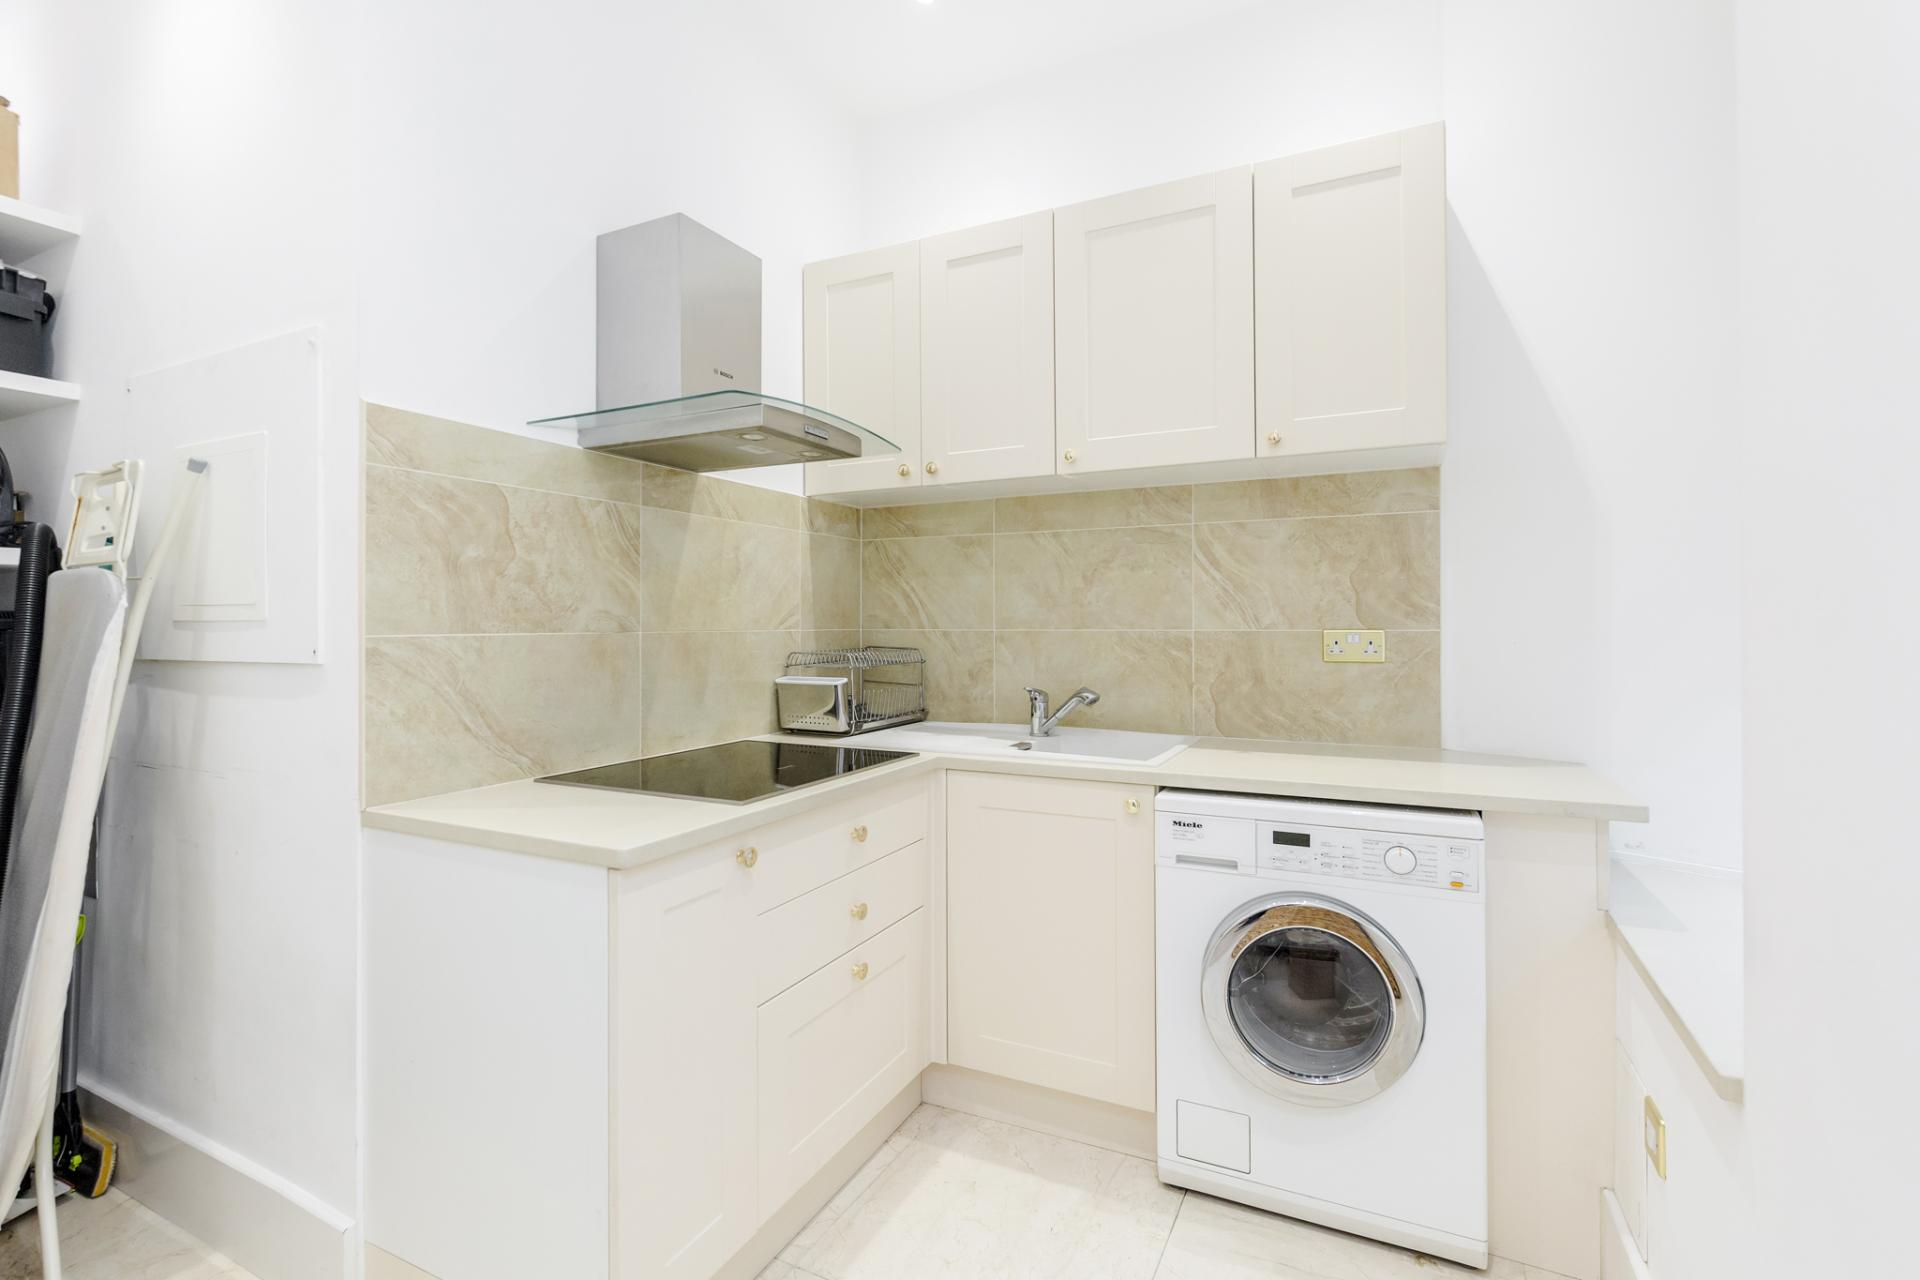 Washer at Grosvenor Square Apartment, Mayfair, London - Citybase Apartments